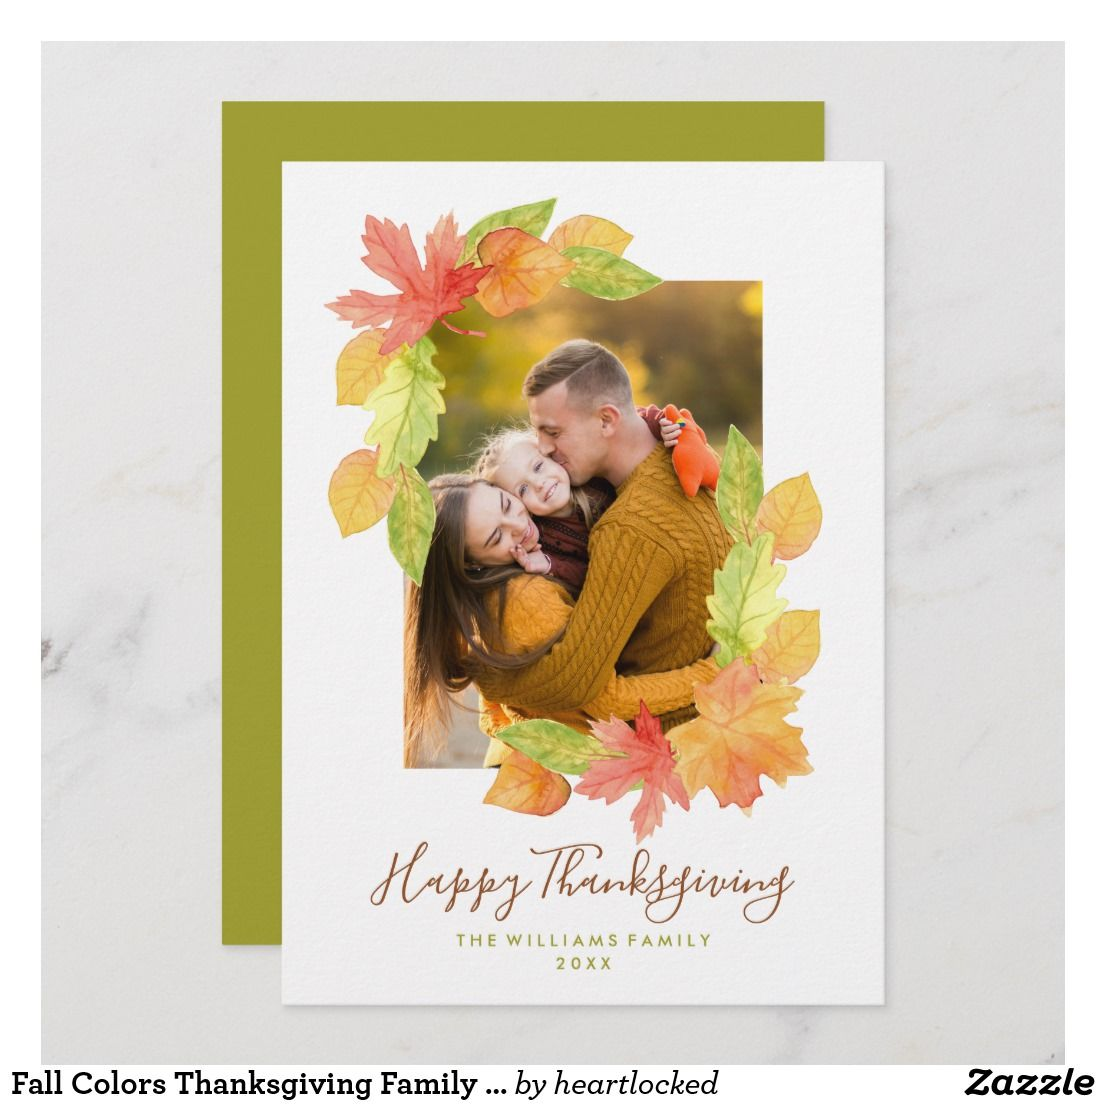 Fall Colors Thanksgiving Family Photo Holiday Card